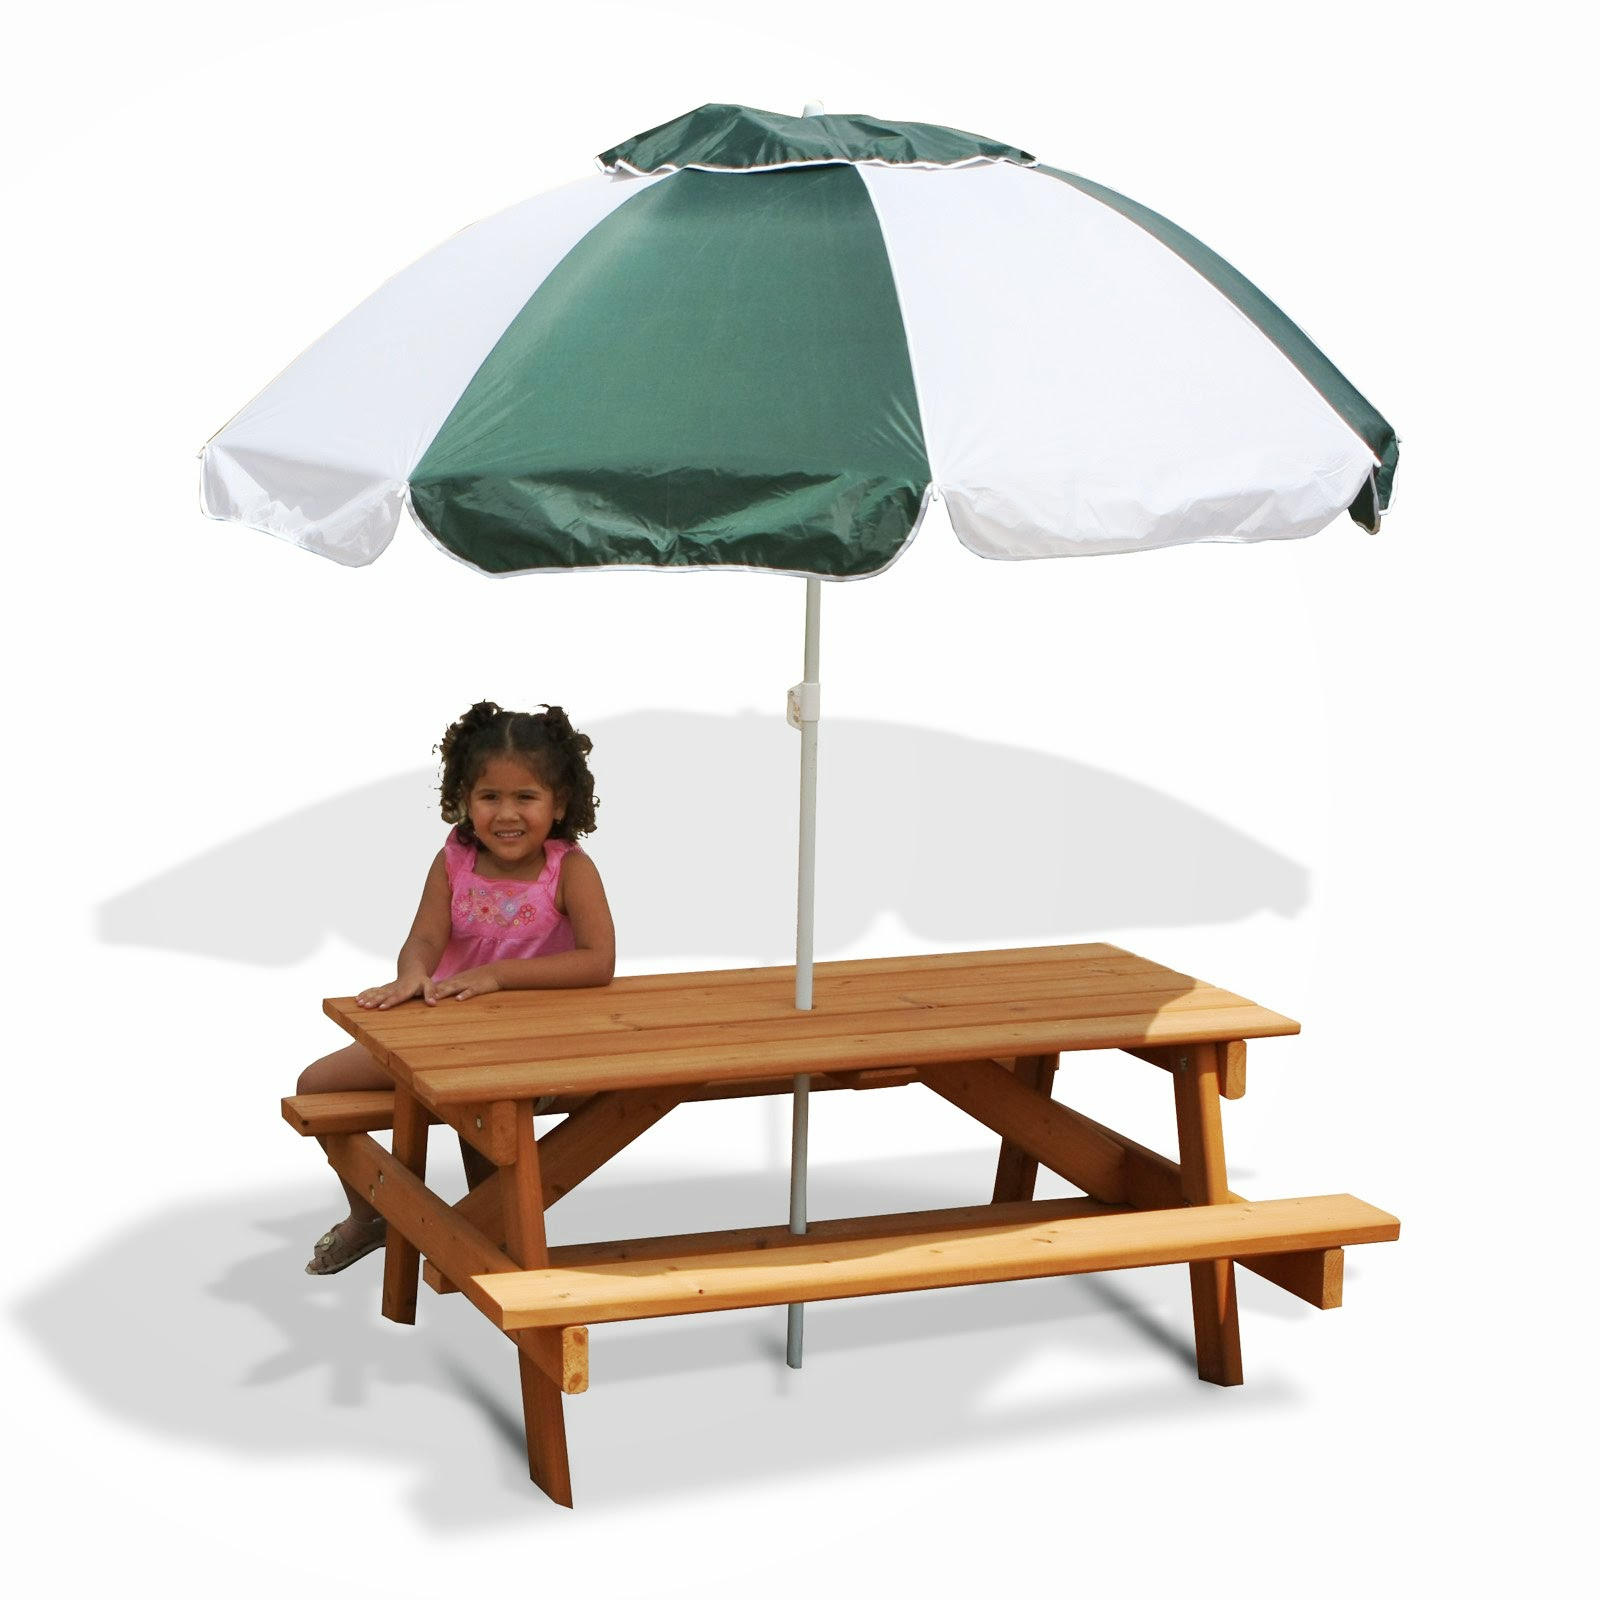 Childrens Picnic Table and Umbrella Design